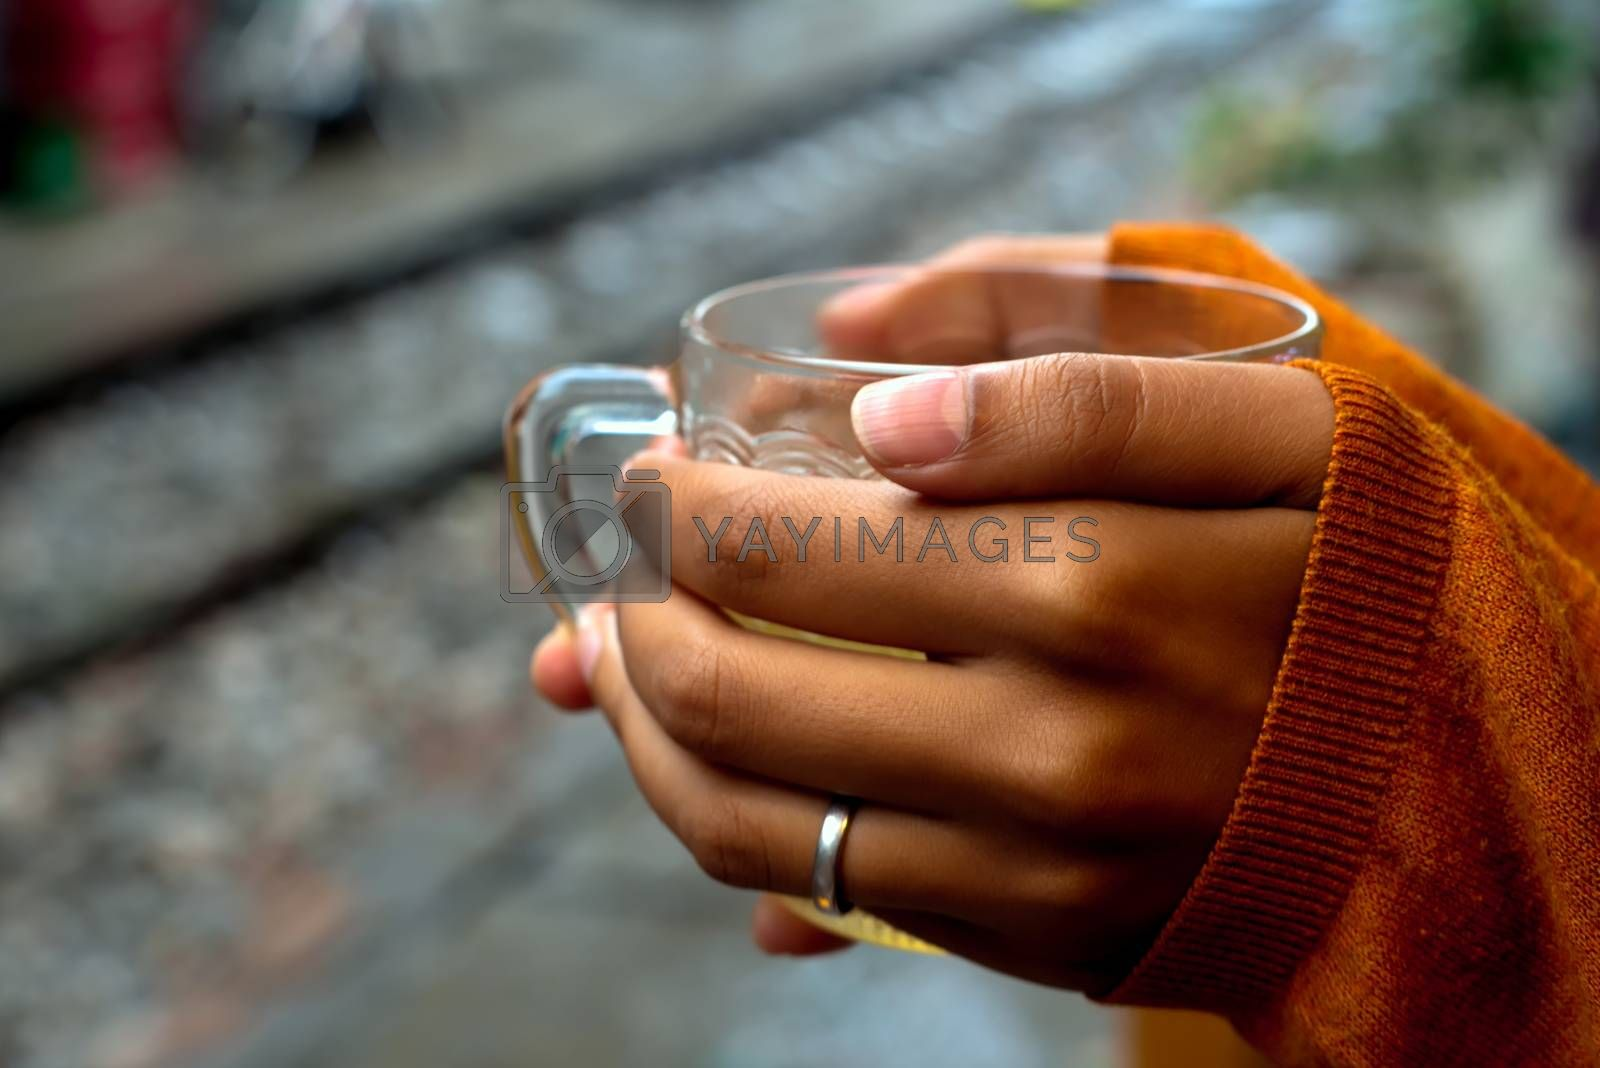 holding a cup of tea by rails waiting for the train with orange pullover covering hands by a third